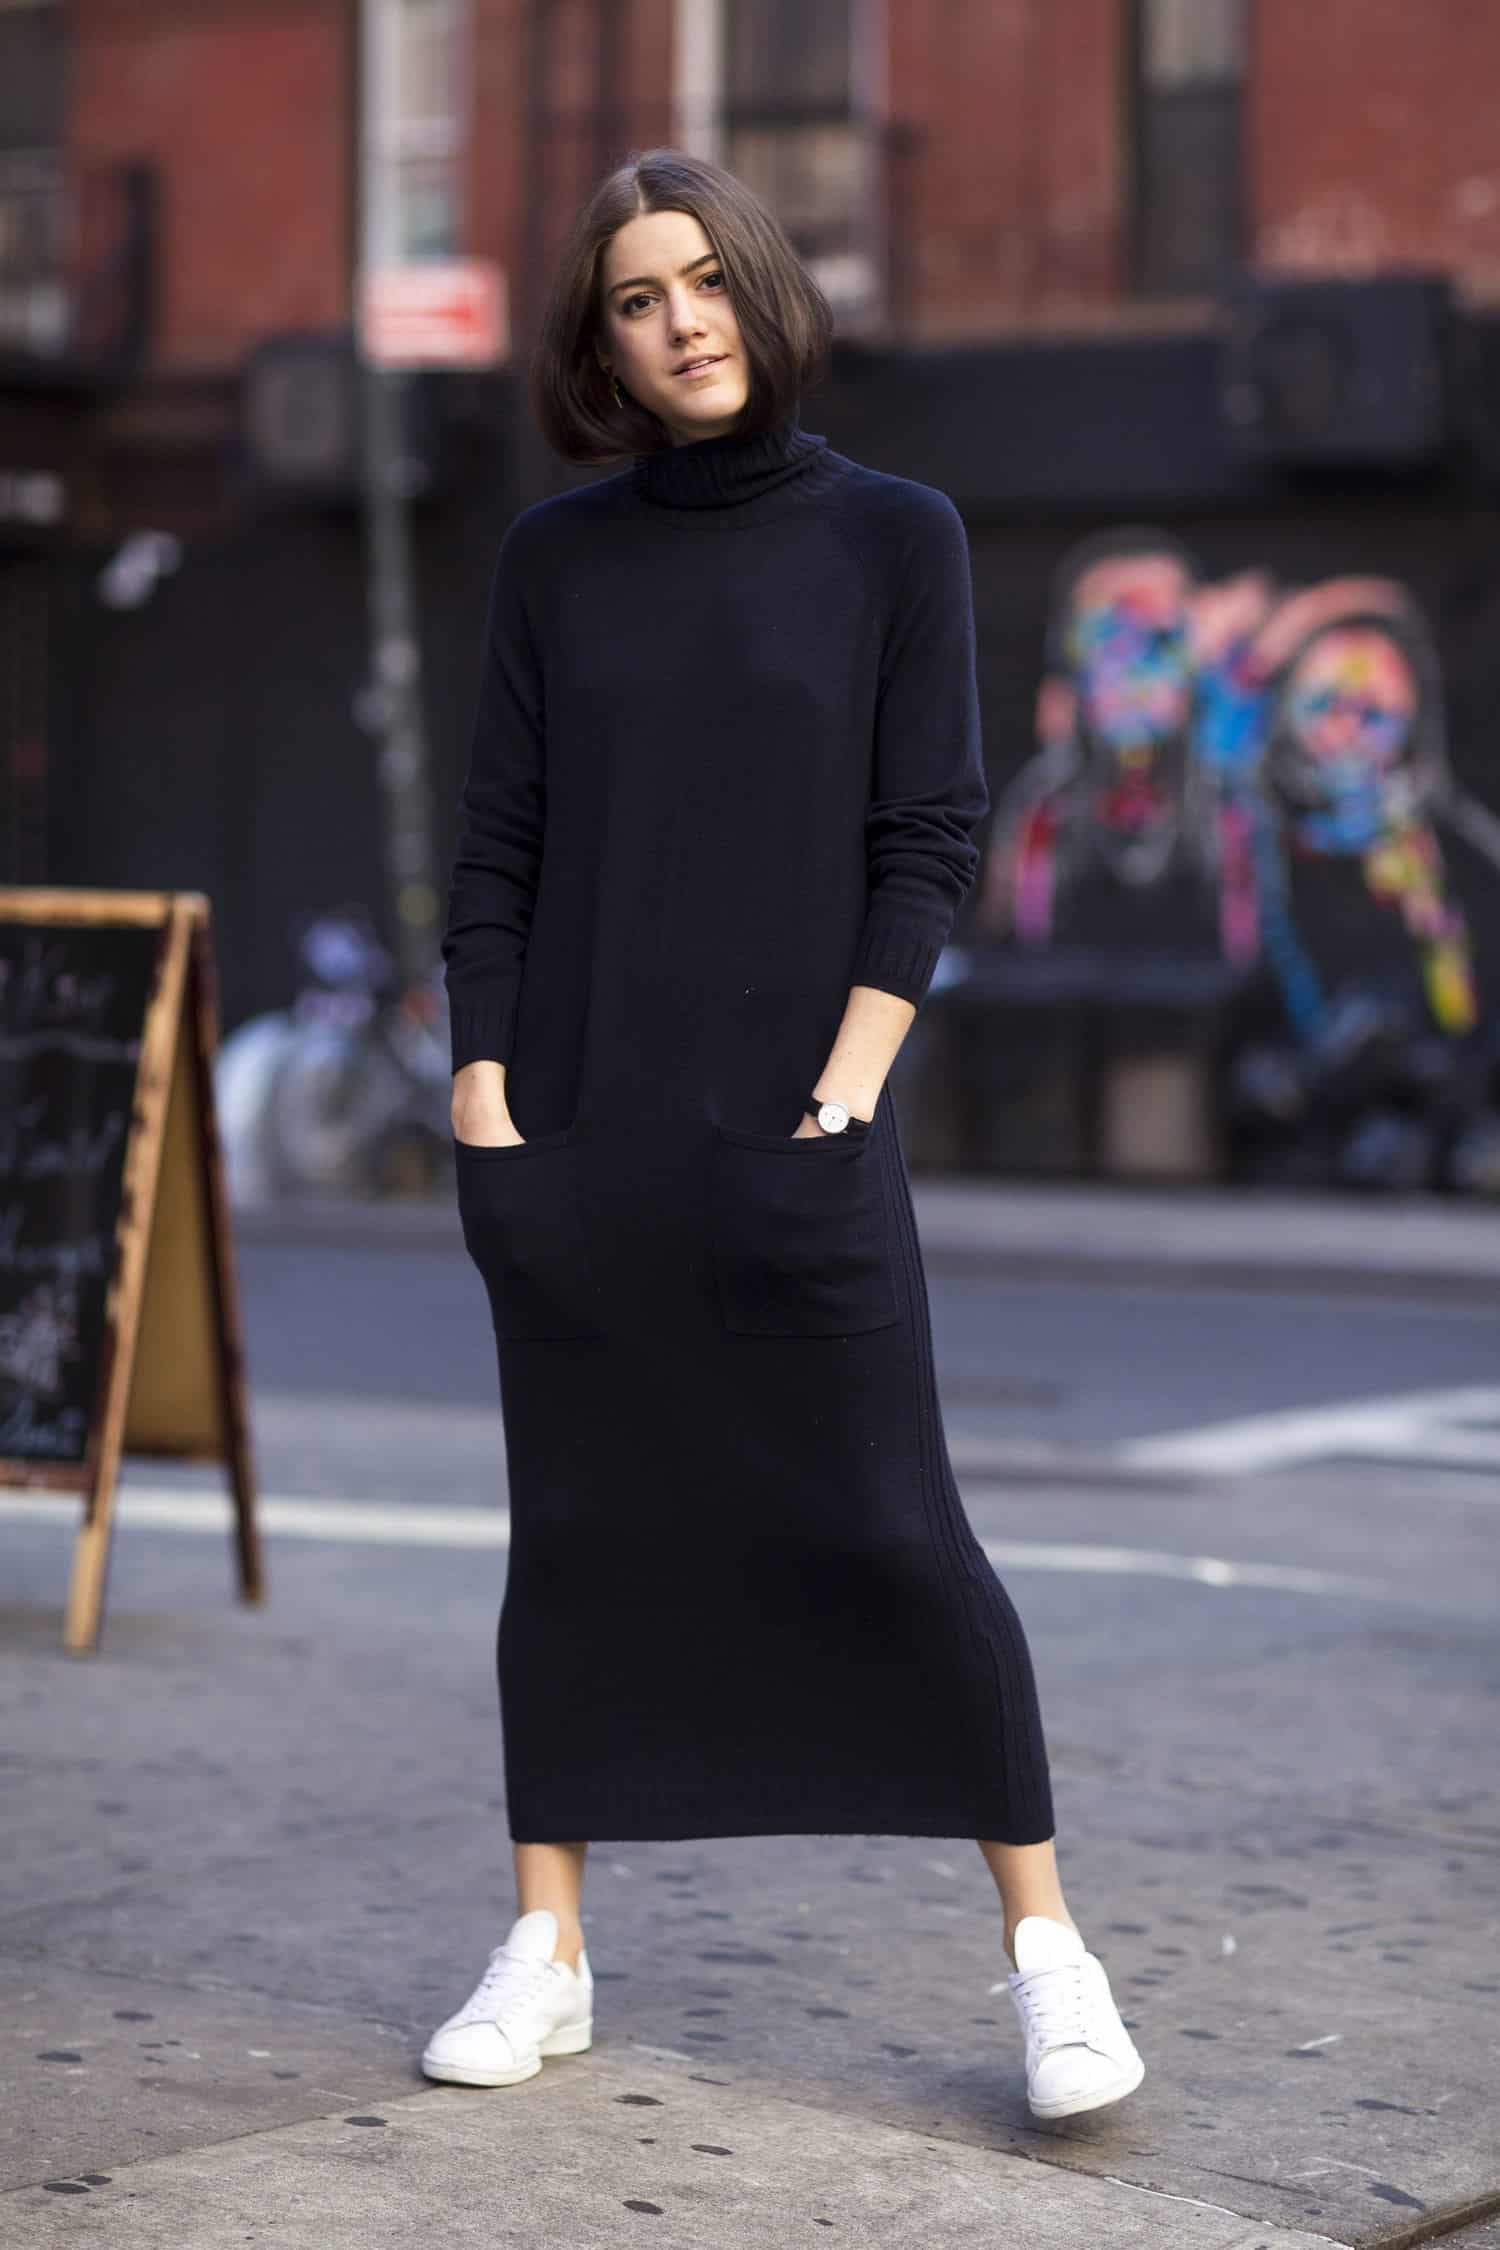 fashion-2016-02-sweater-dress-street-style-emma-sousa-getty-main